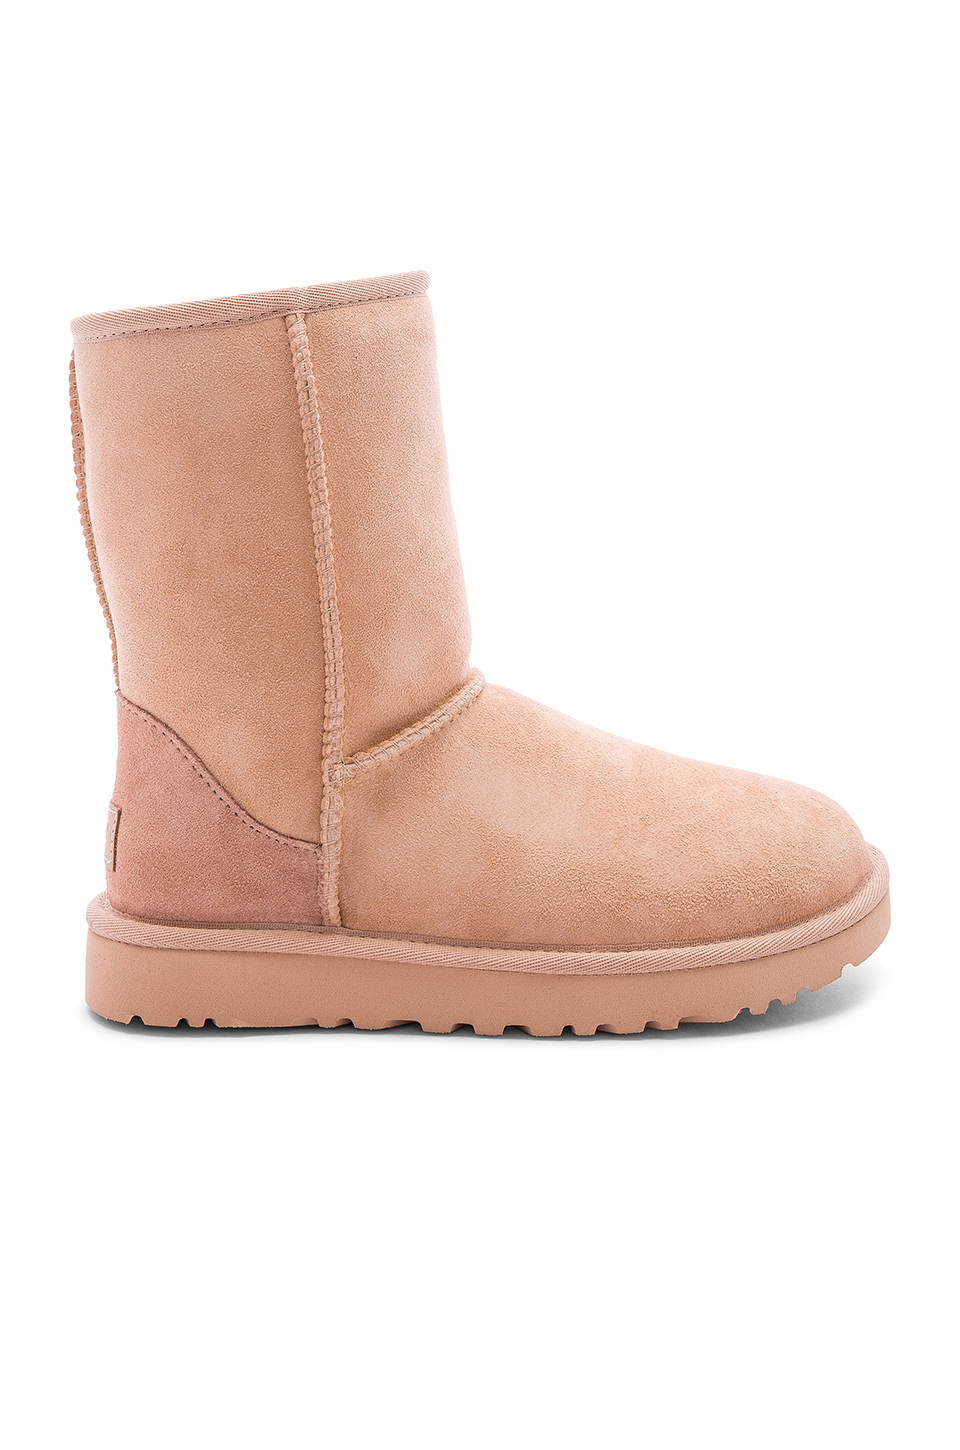 b404aed5b Buy Original UGG Classic Short II Boot at Indonesia | BOBOBOBO